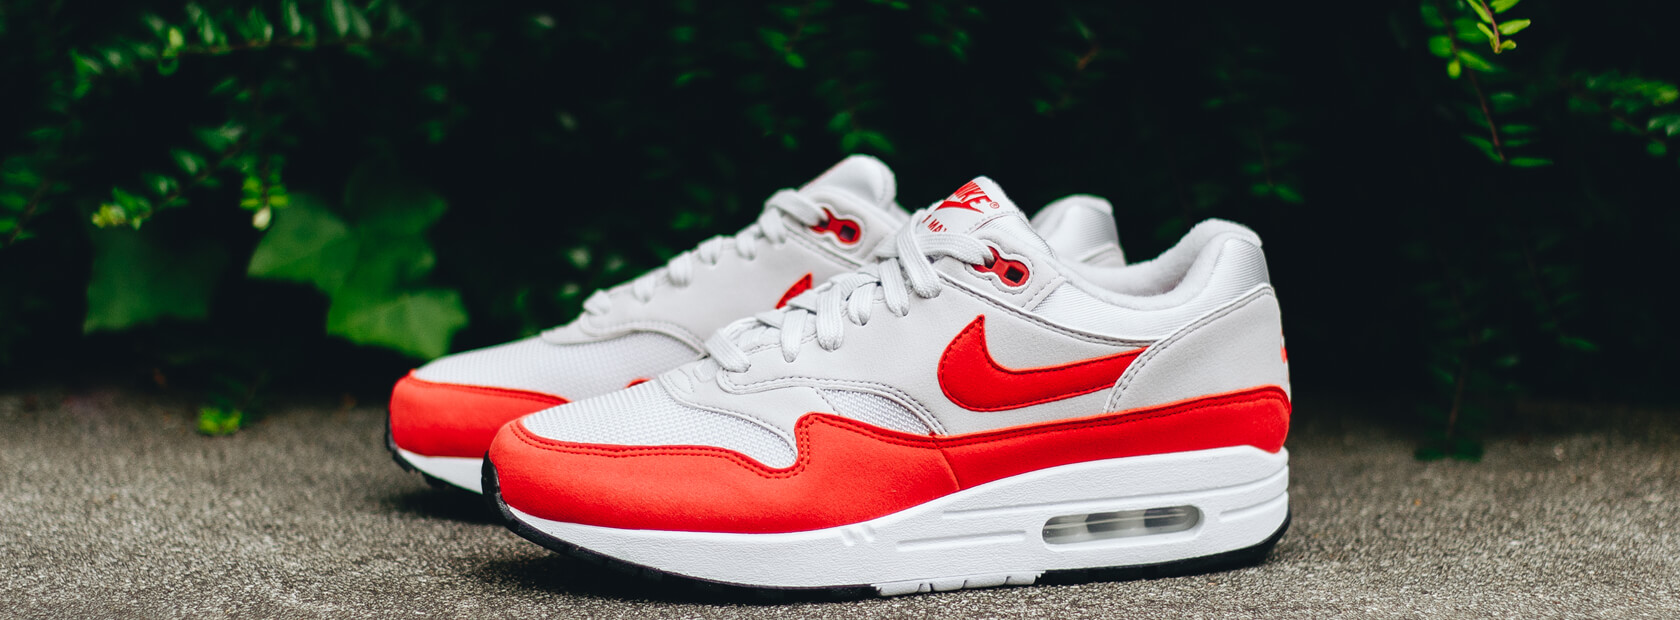 Nike Wmns Air Max 1 - Habanero Red